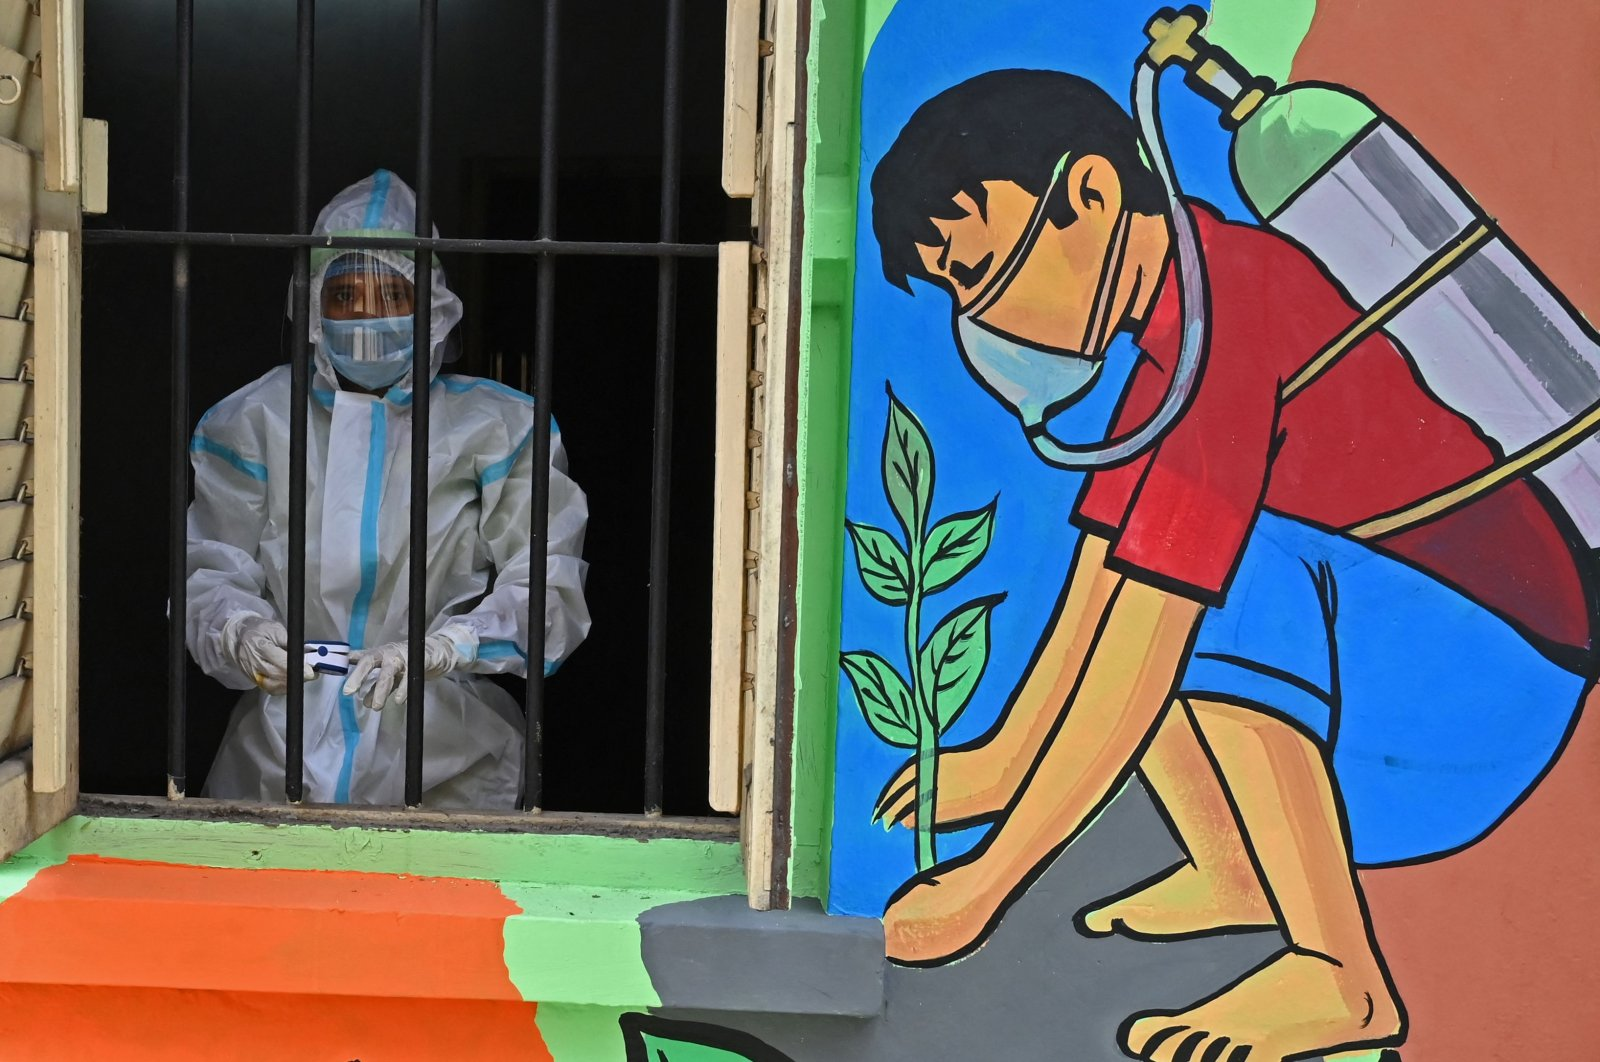 """A health worker wearing a protective suit stands in the window of a newly inaugurated """"Oxygen Hub"""" for COVID-19 patients in Kolkata, West Bengal, India, May 23, 2021. (AFP Photo)"""